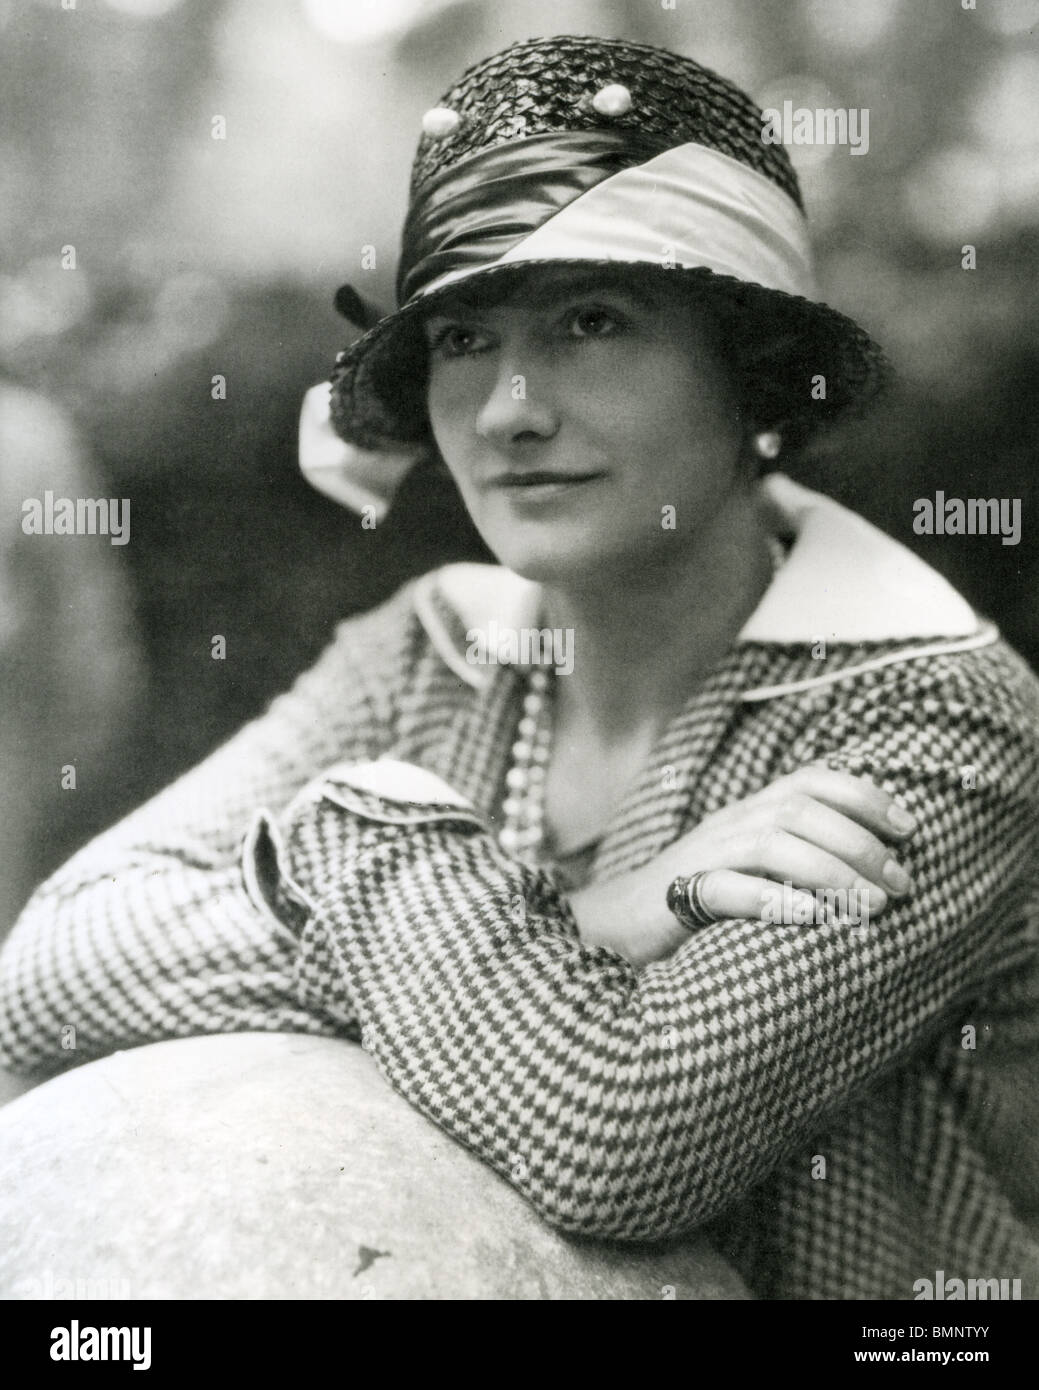 01d4d2fcc15 COCO CHANEL - couturier français (1883-1971) ici en 1929 Photo Stock